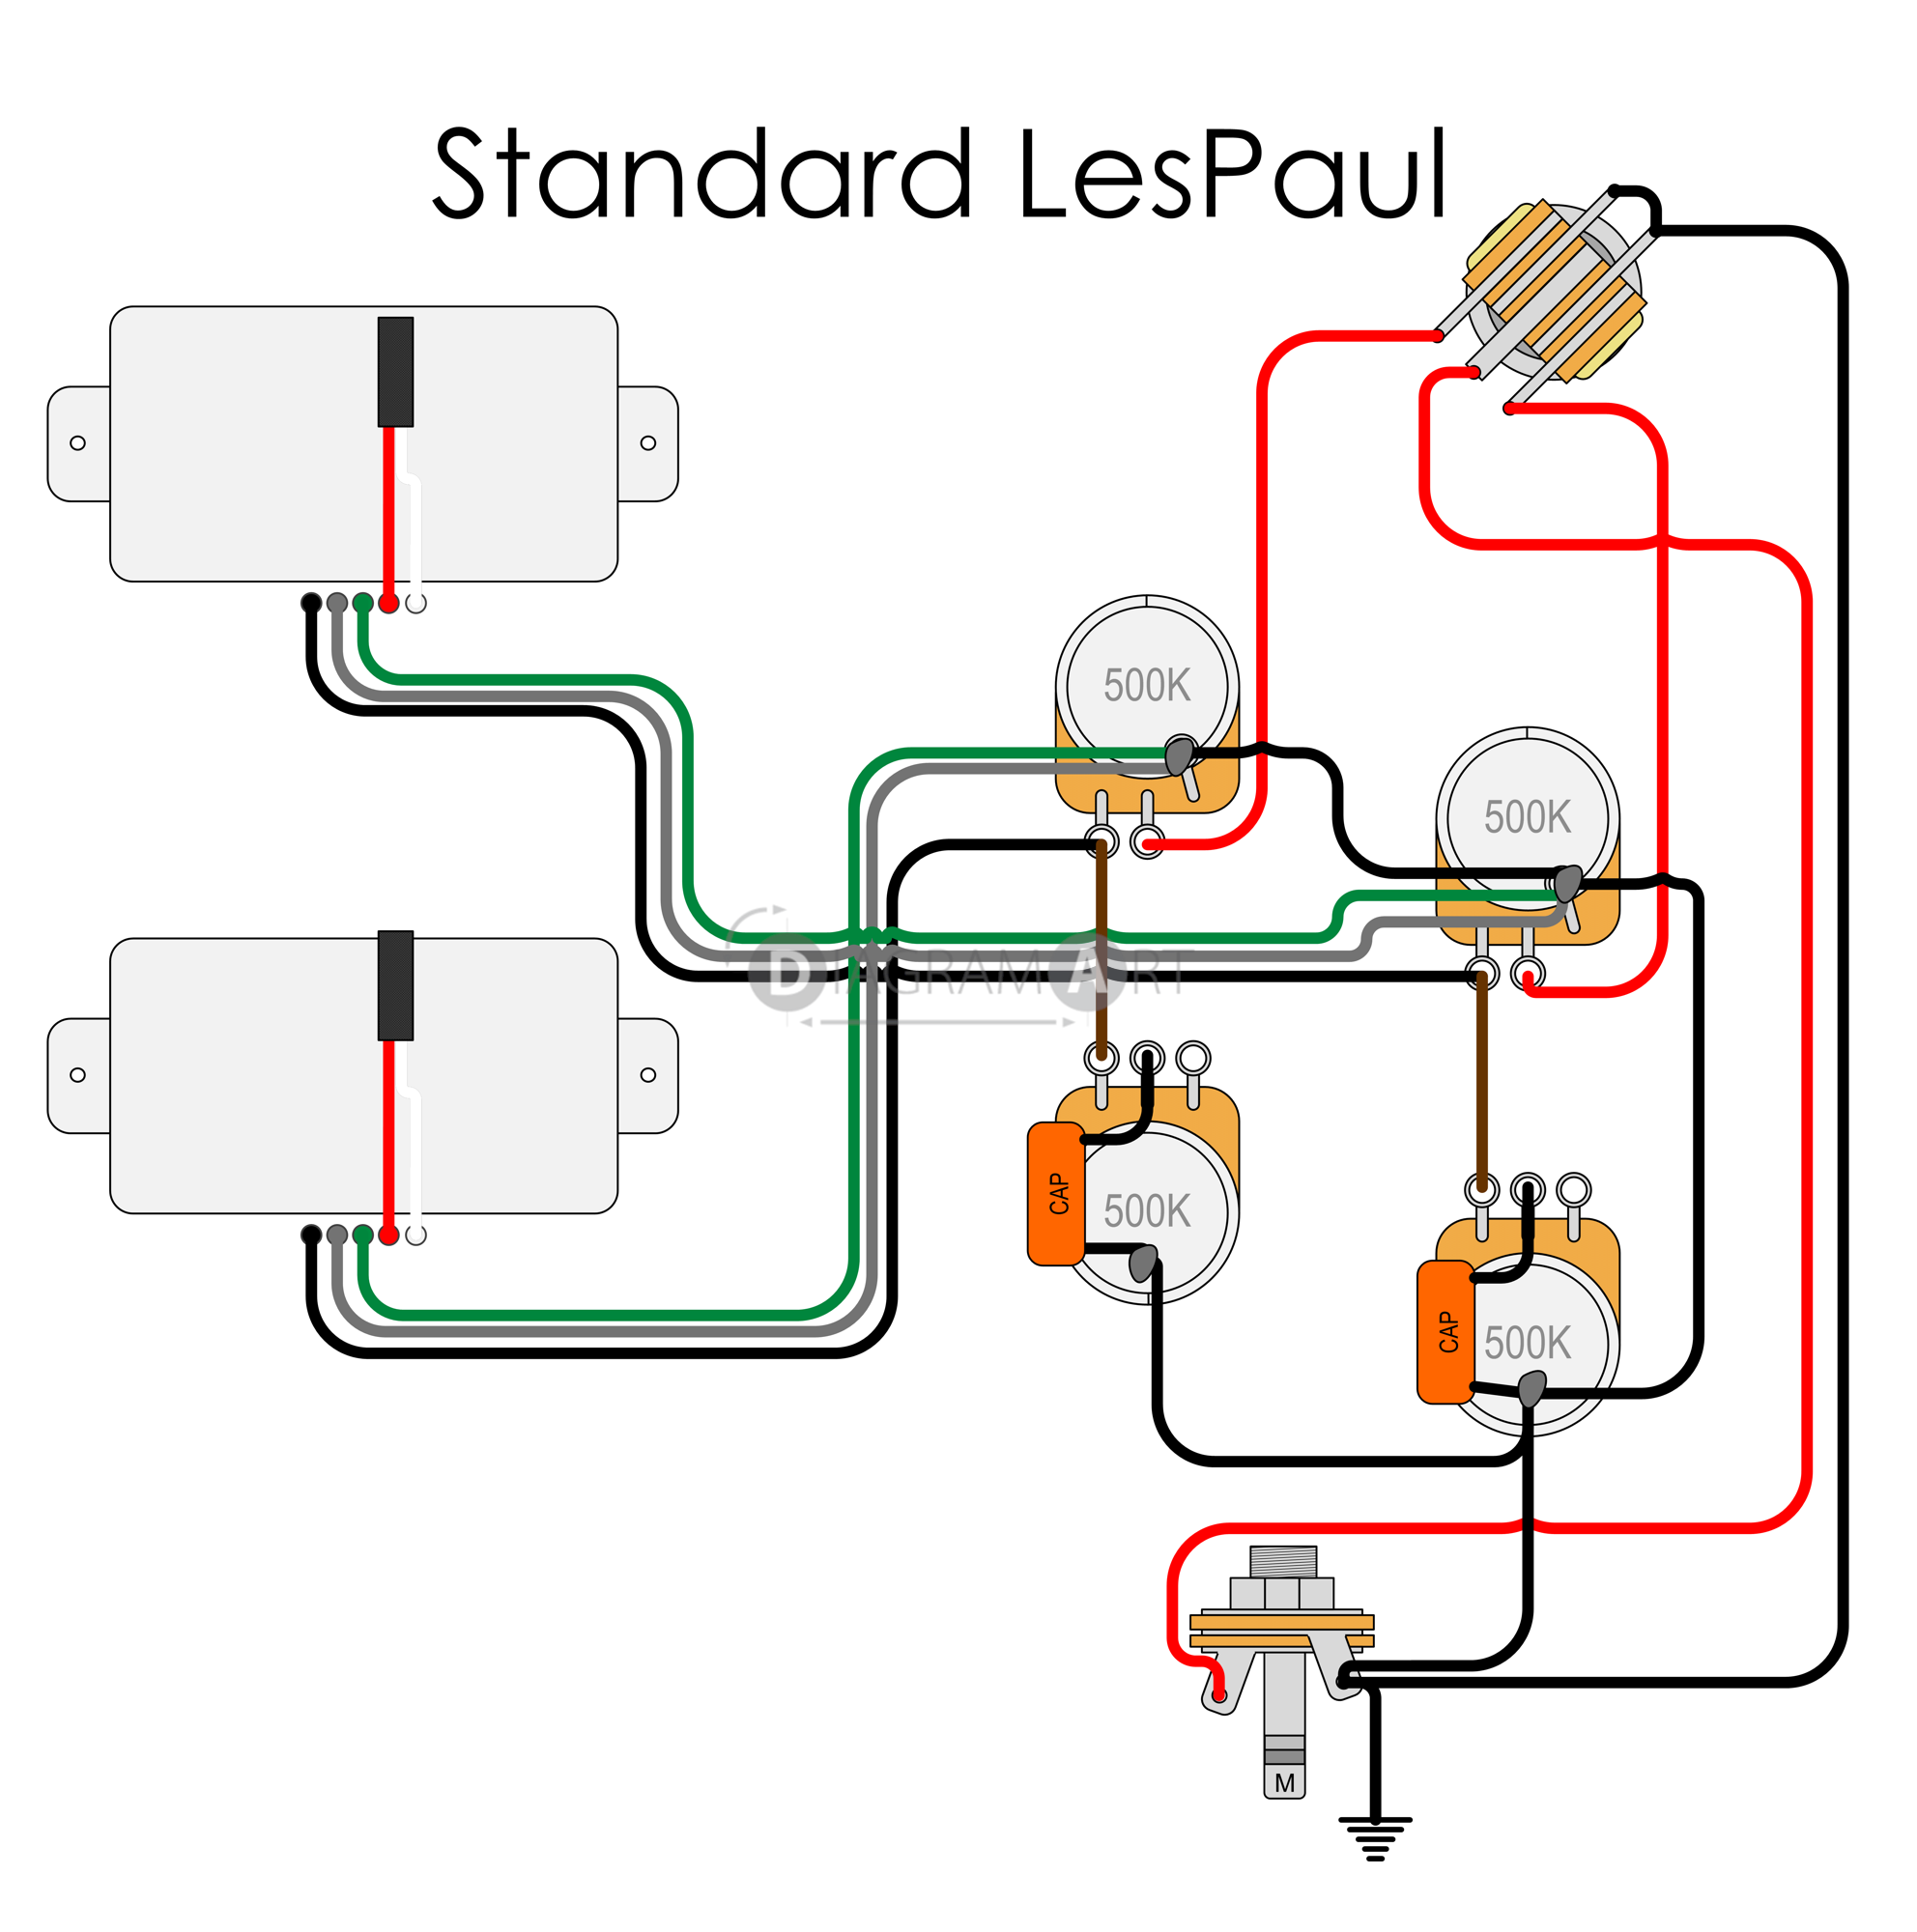 wiring diagram for les paul standard new wiring diagrams wiring library my les paul forum